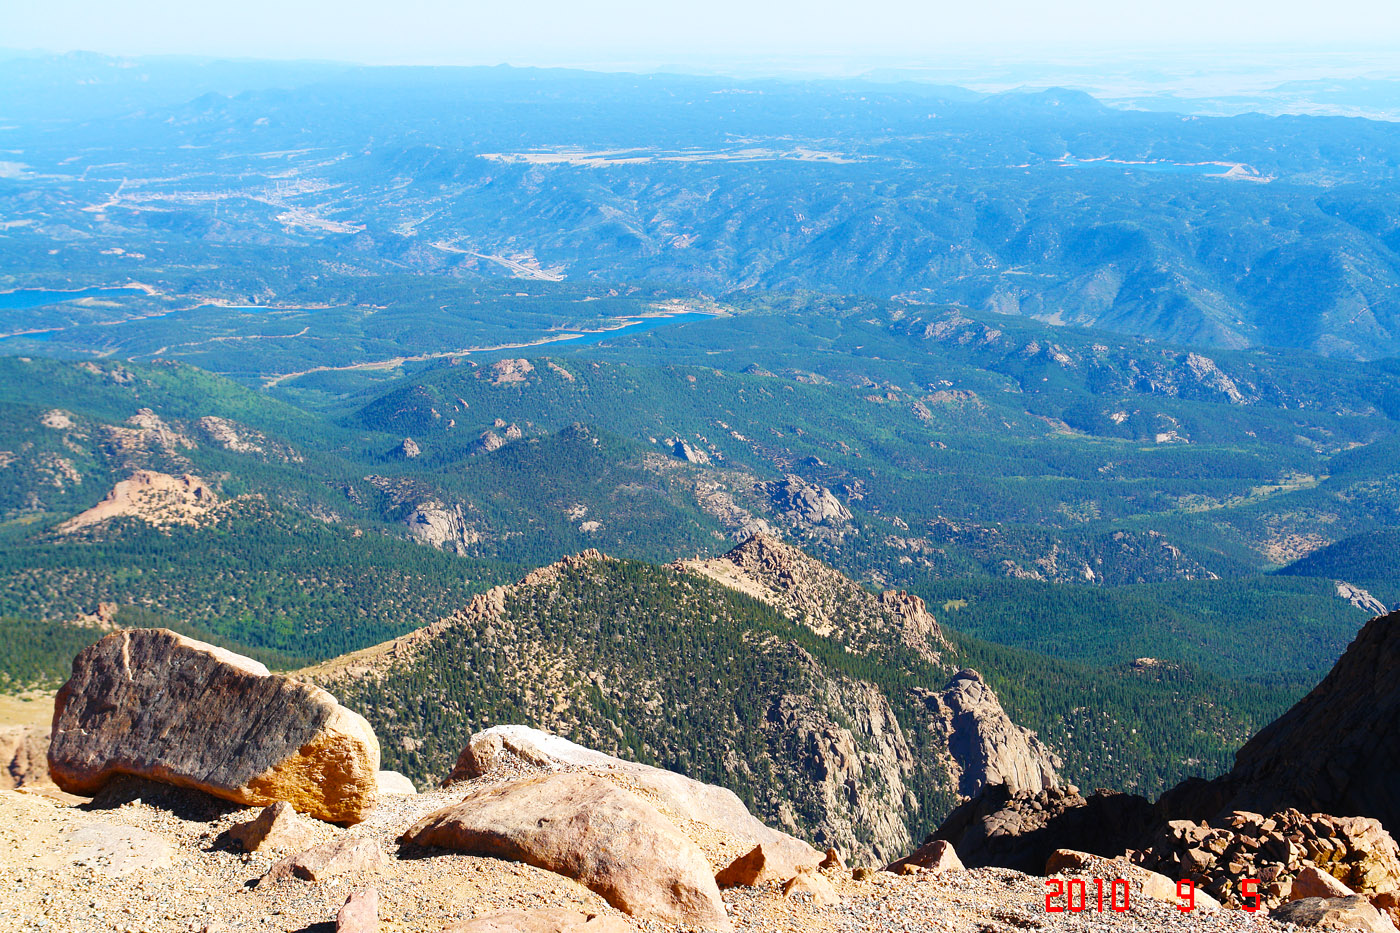 Katherine Lee Bates Made Notations In Her Journal Upon Standing At The Summit Of Pike S Peak 1893 Some Those Words Later Became What We Now Consider